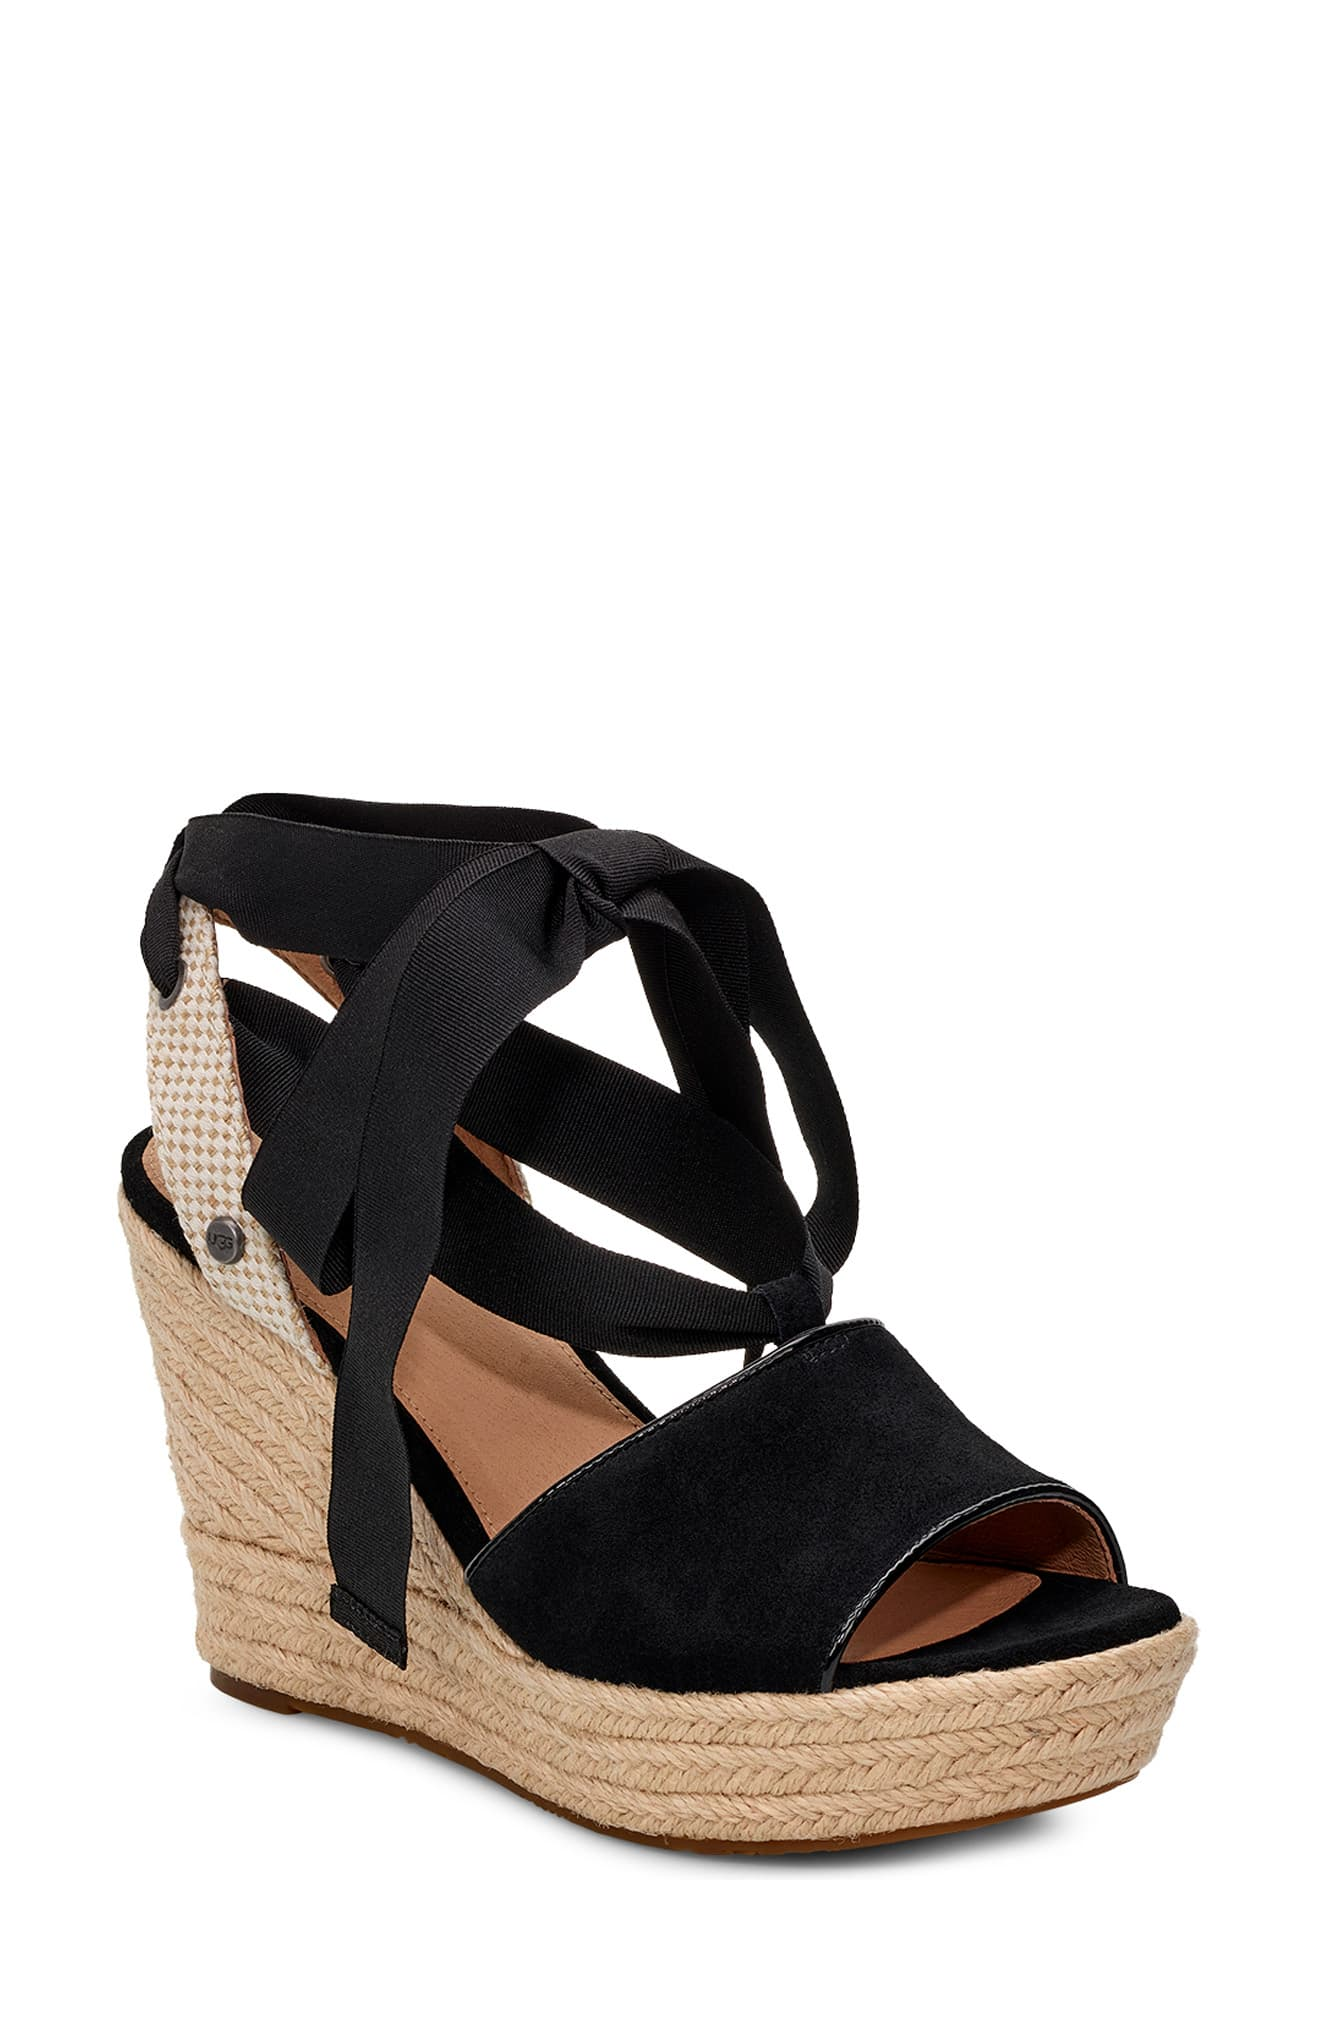 92e7cb42595 Women's Ugg Shiloh Wedge Sandal, Size 5.5 M - Black | Products in ...